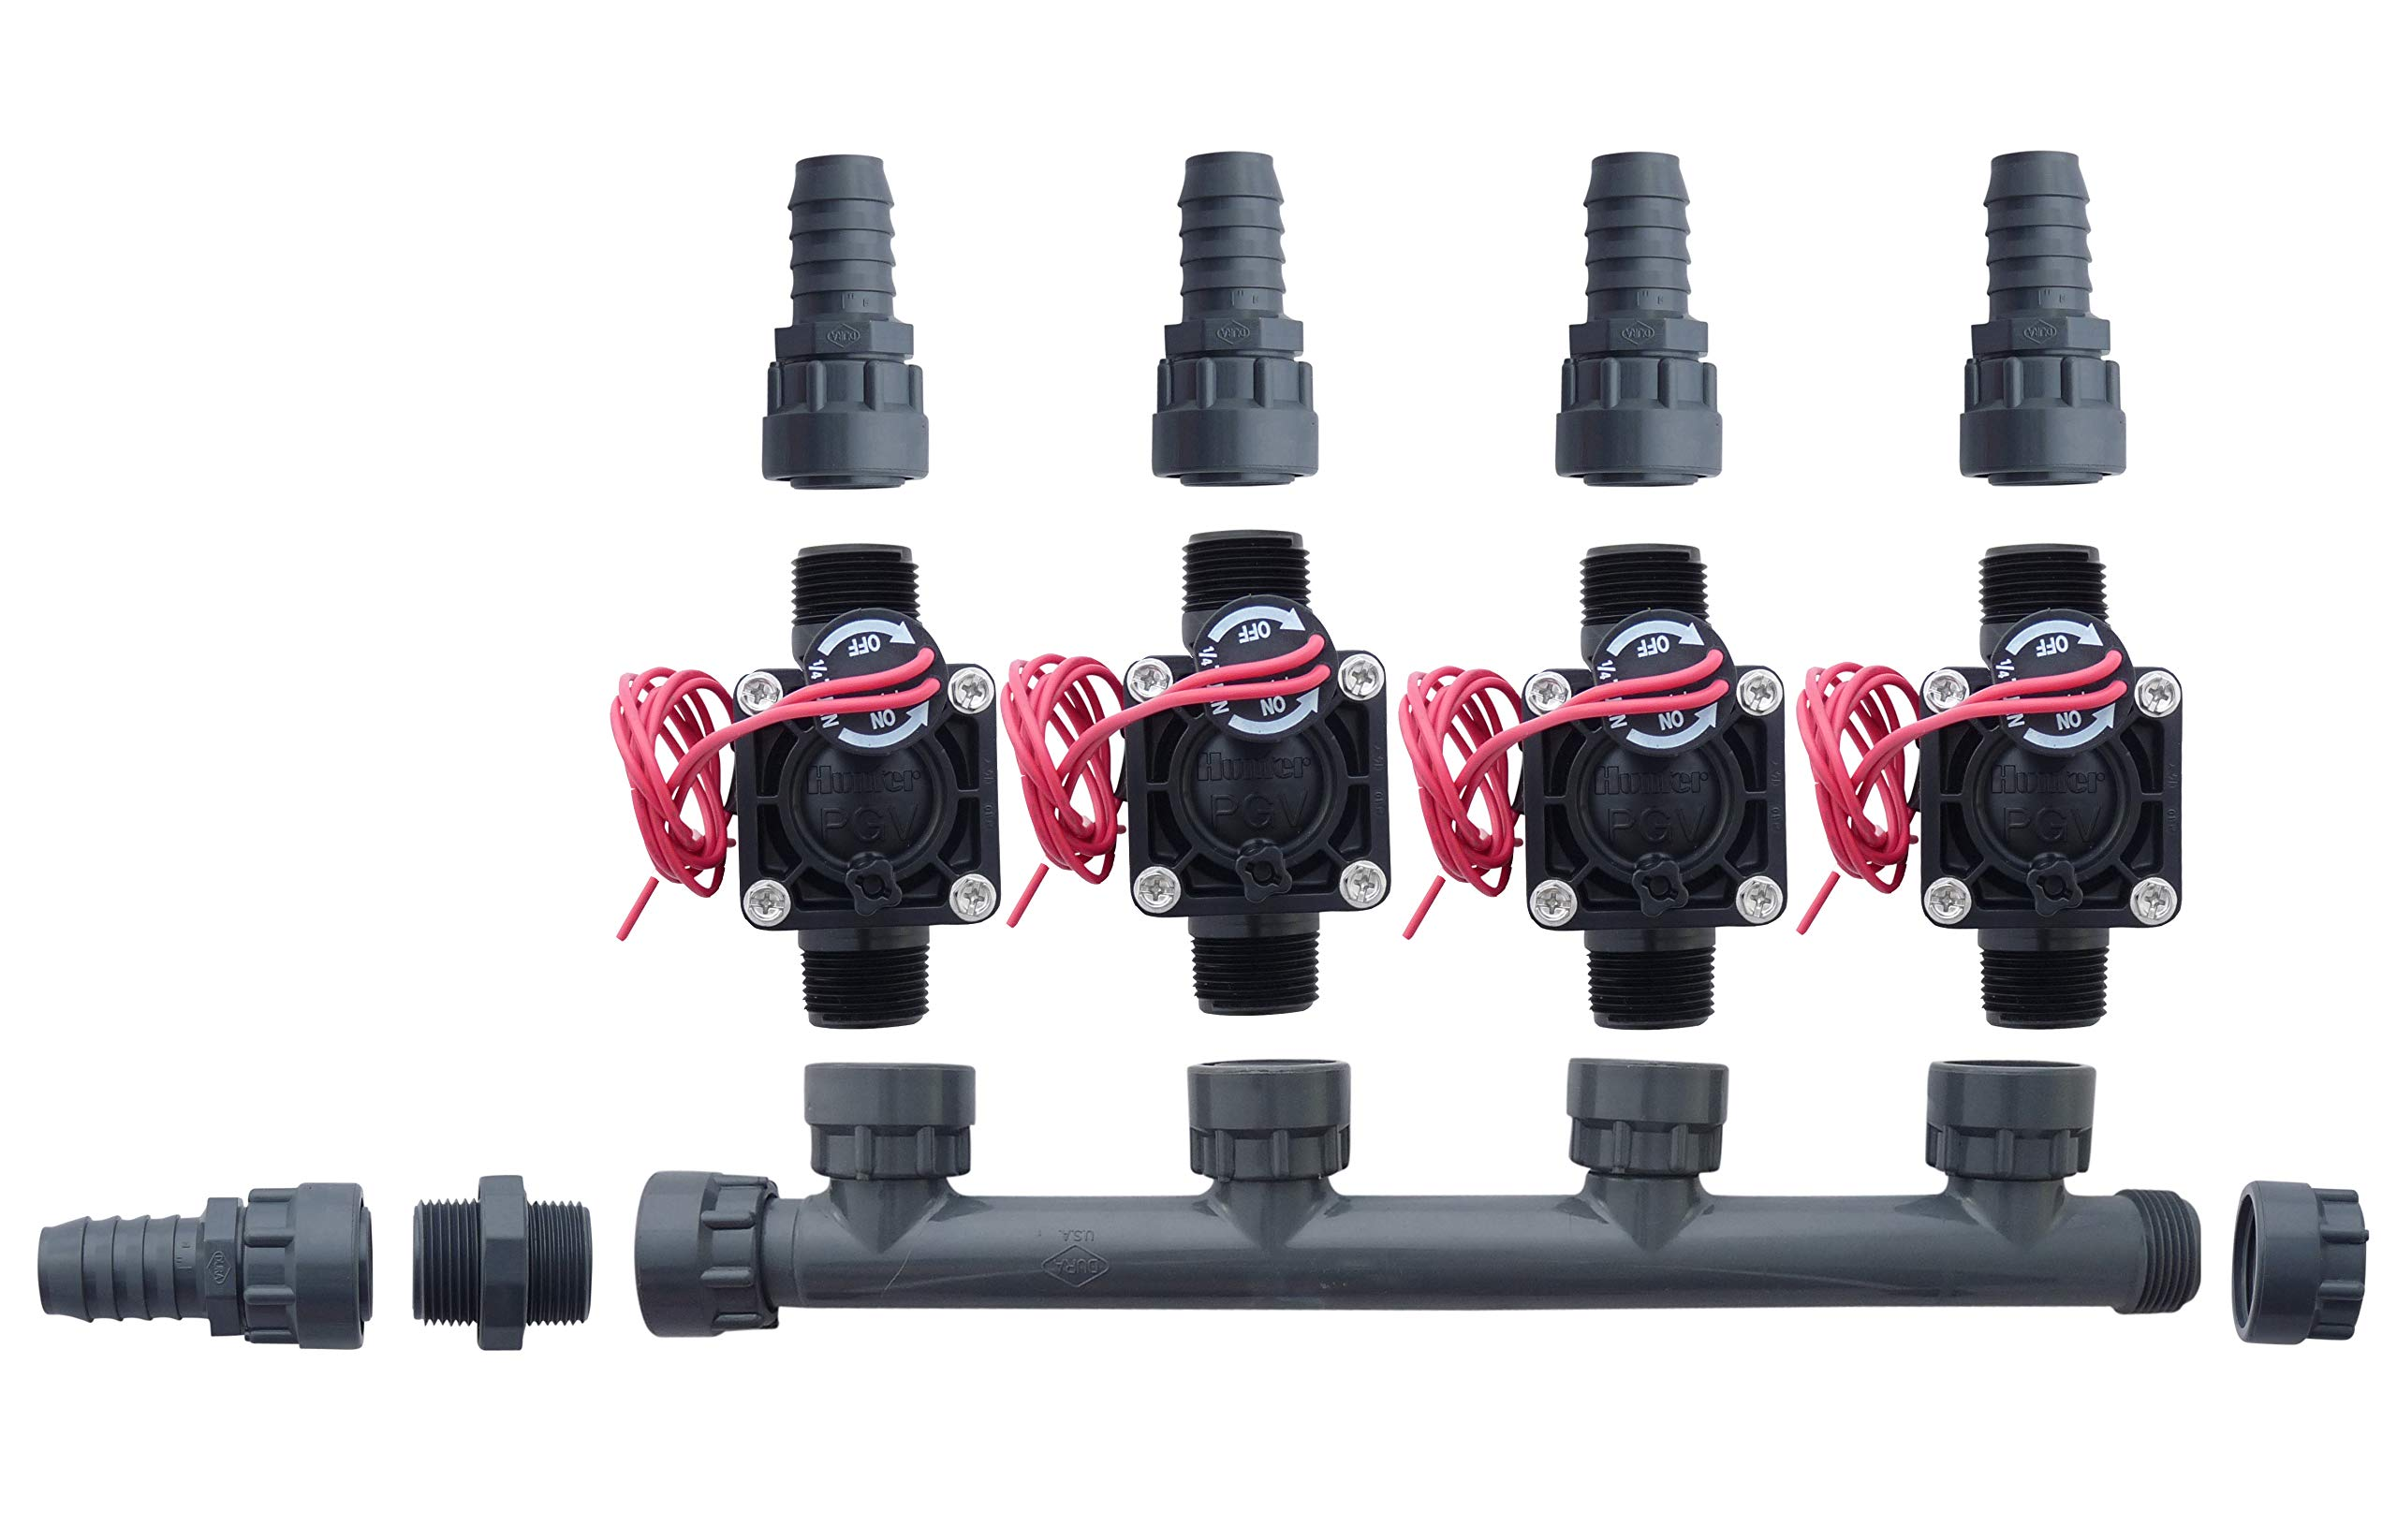 Hunter PGV100-MM 4 Zone Dura Manifold Valve Kit Without Flow Control - Barb PGV100MM (4 Zone)